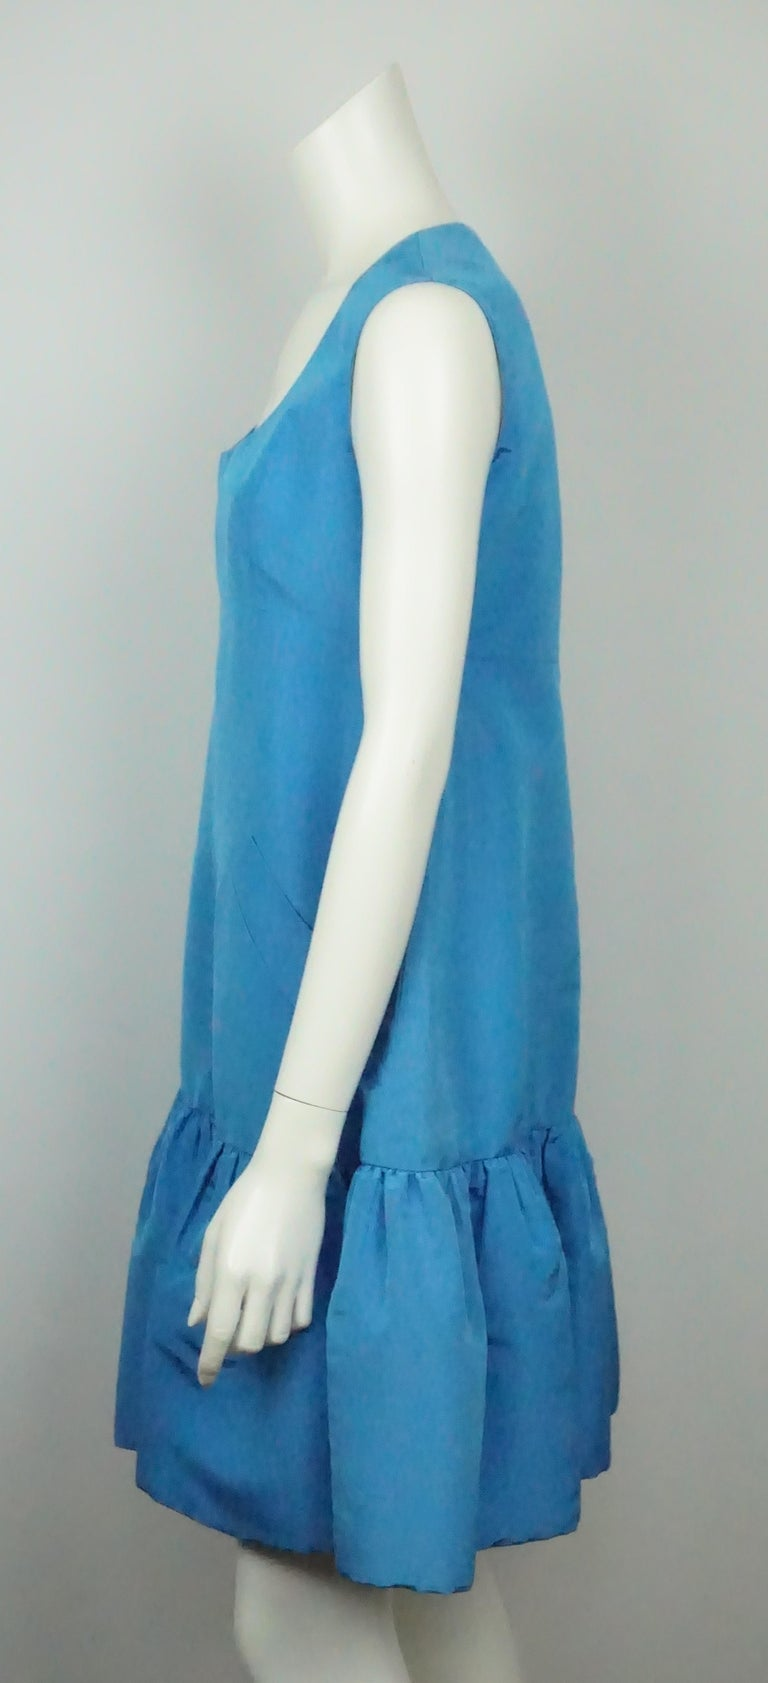 Oscar De La Renta Blue W/ Ruffle Bottom Dress - 8. This beautiful Oscar De La Renta sleeveless dress is in great condition. It has minimal signs of use. The dress is a vibrant blue color and made of taffeta. It is a shift dress type fit, very loose